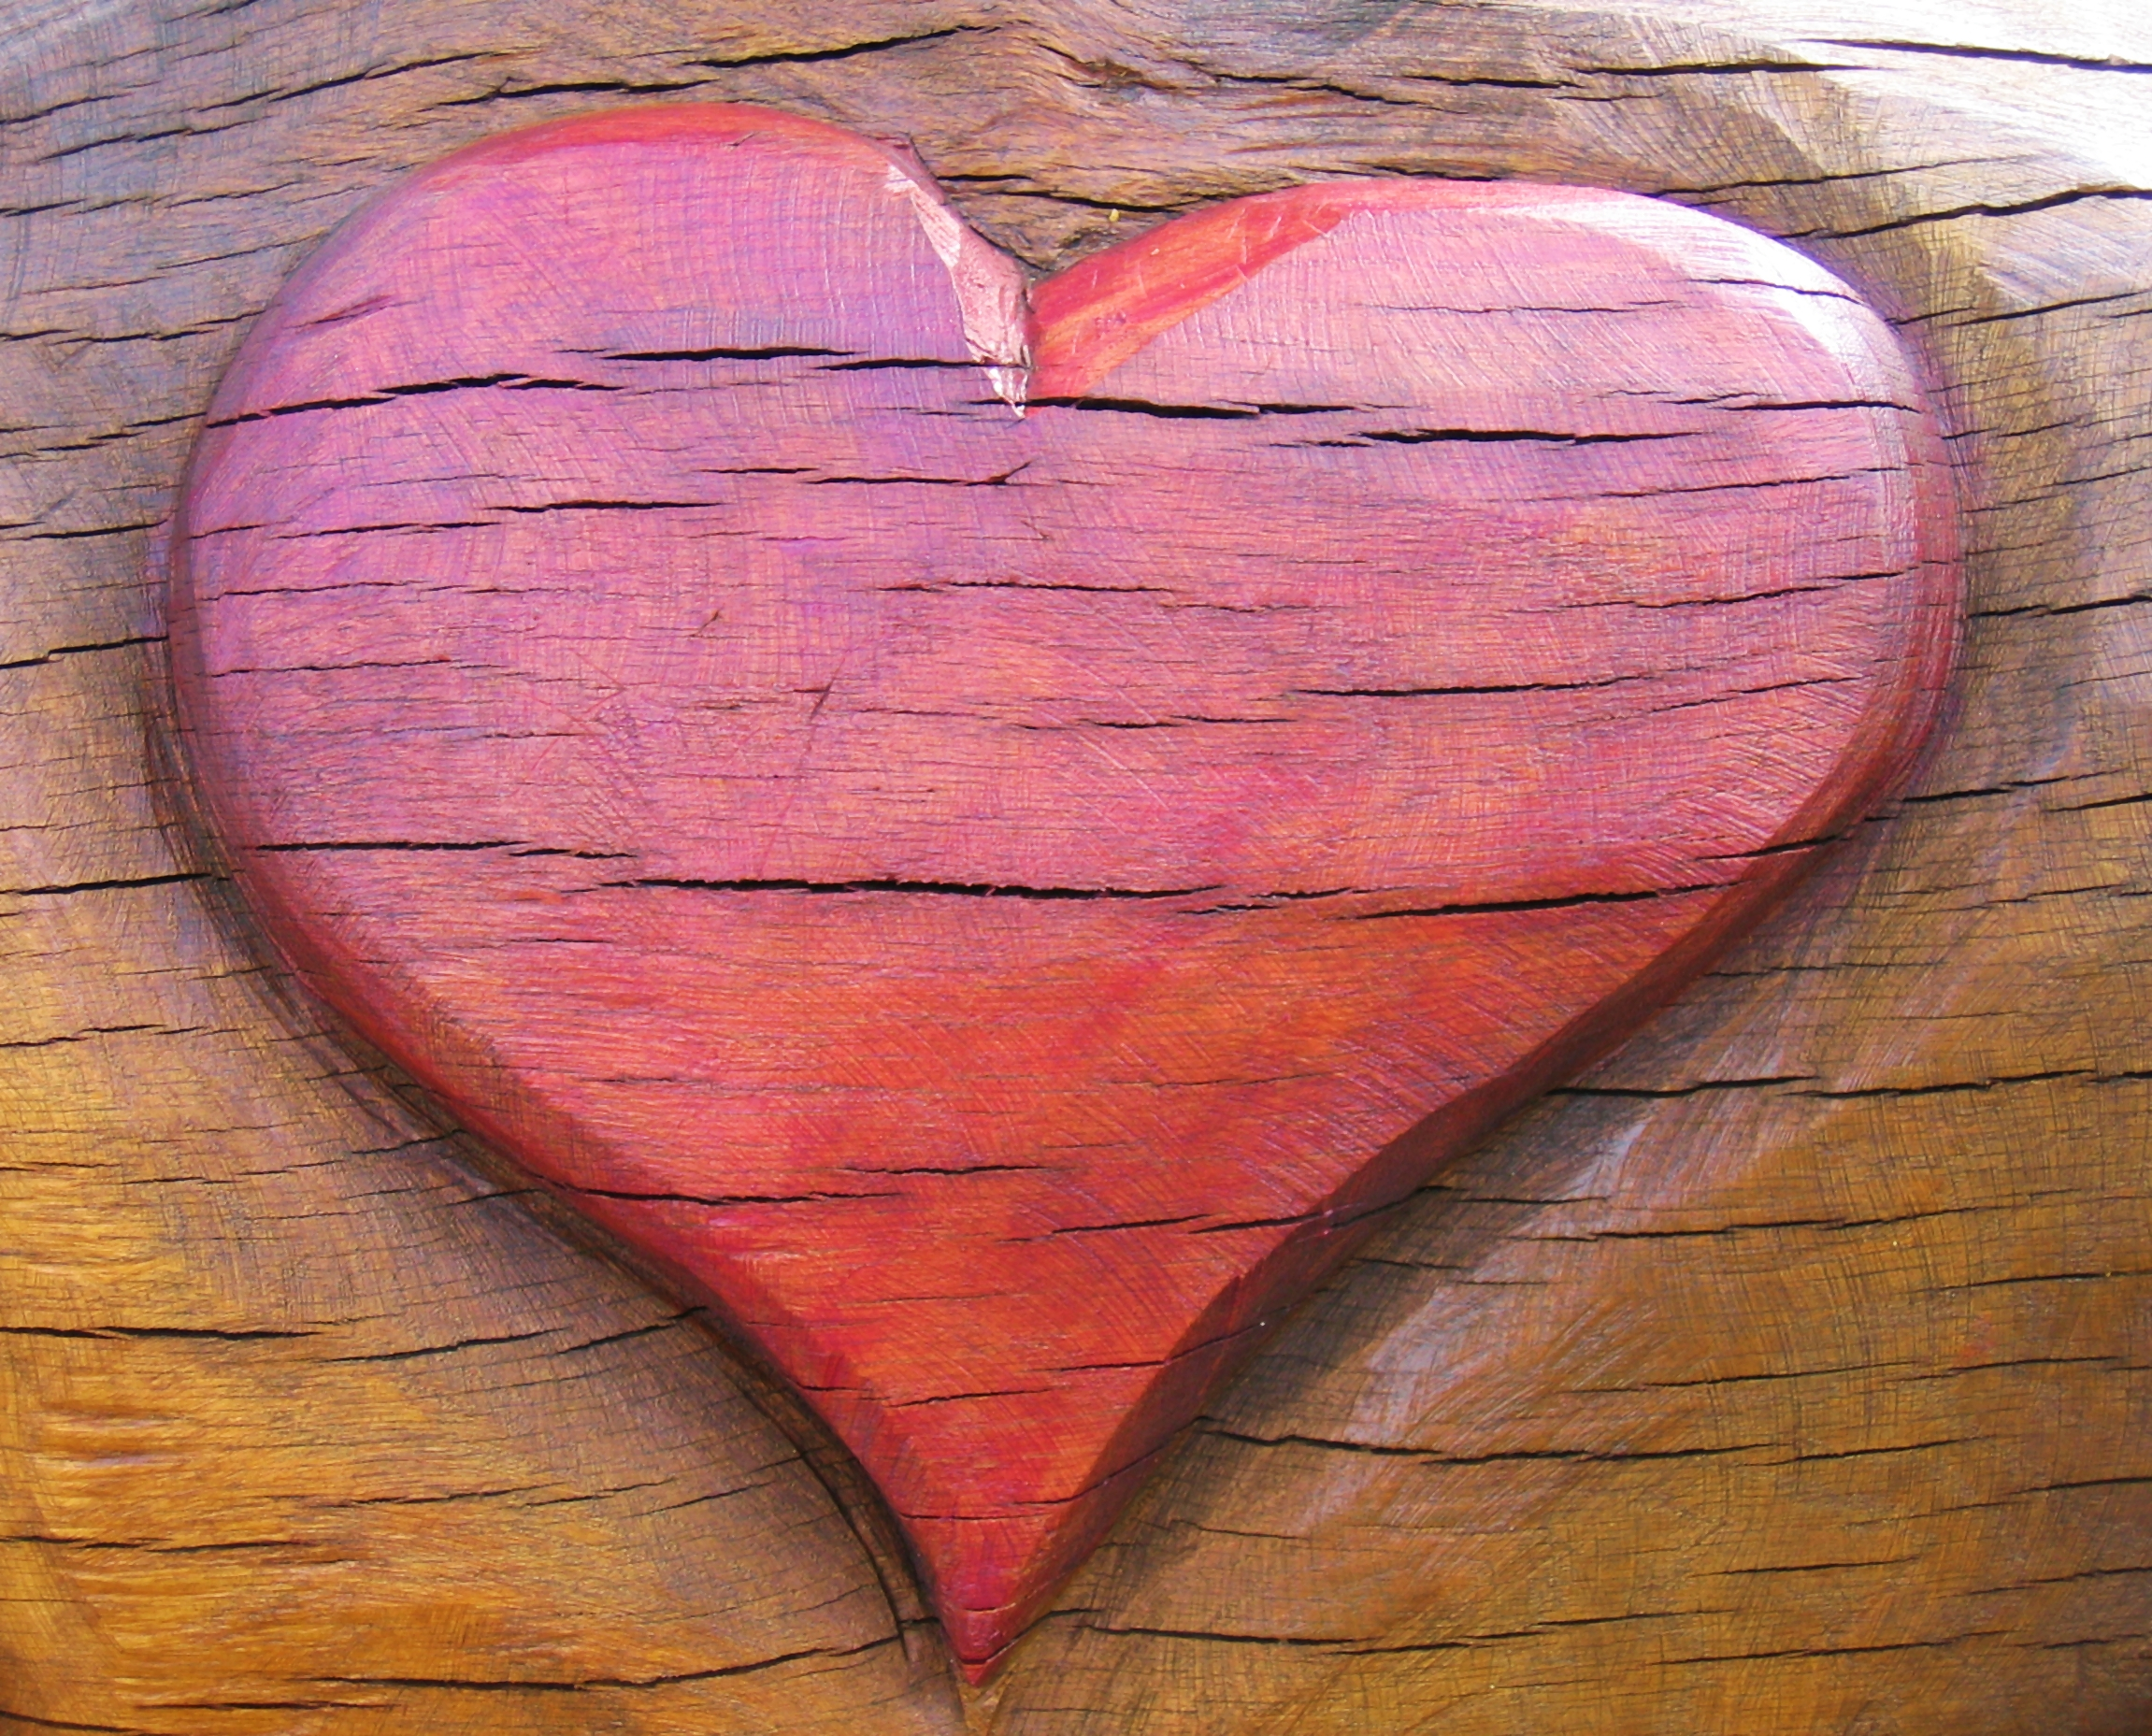 Amazing photo of wooden heart with #9C362F color and 2302x1857 pixels